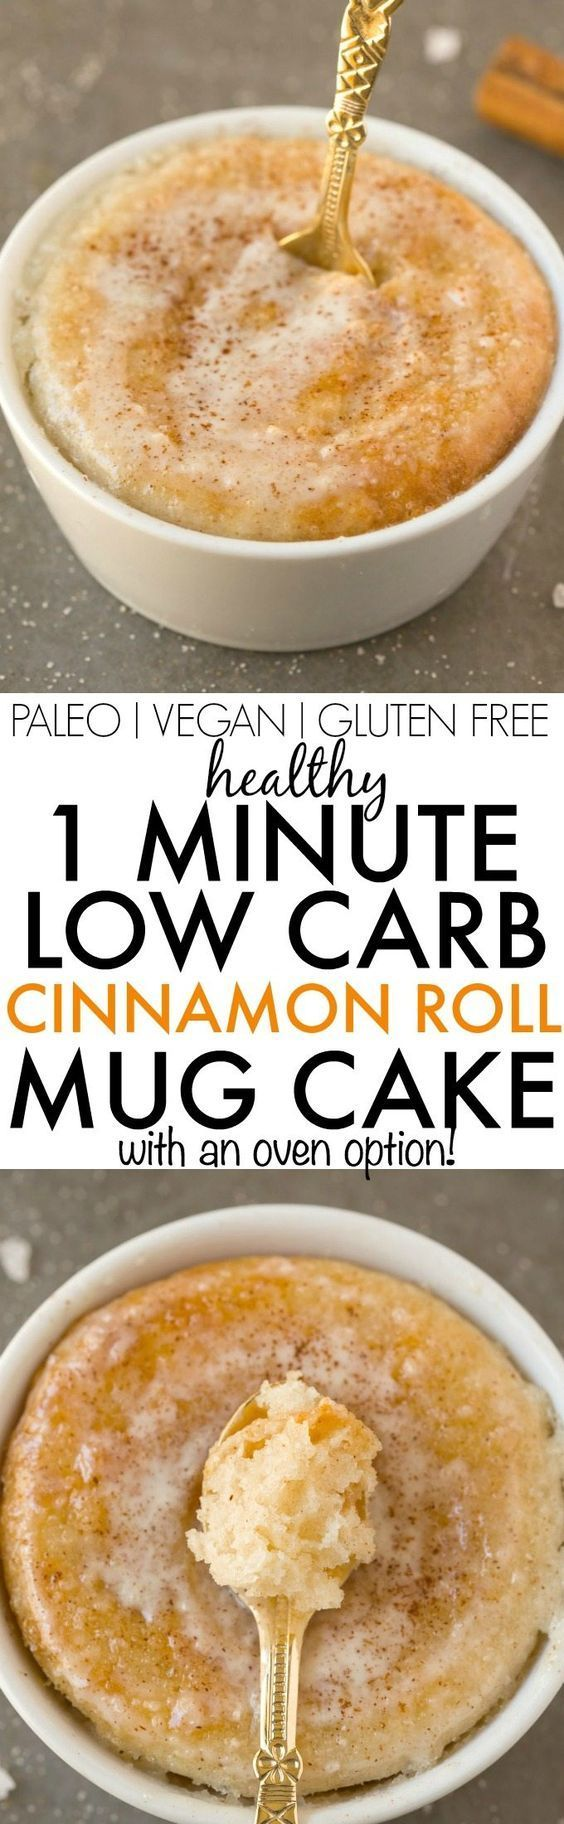 Healthy 1 Minute LOW CARB Cinnamon Roll Mug Cake- Light, fluffy and moist in the inside! Single servinf and packed full of protein and NO sugar whatsoever-Even the creamy glaze! {vegan, gluten free, paleo recipe}- thebigmansworld.com/